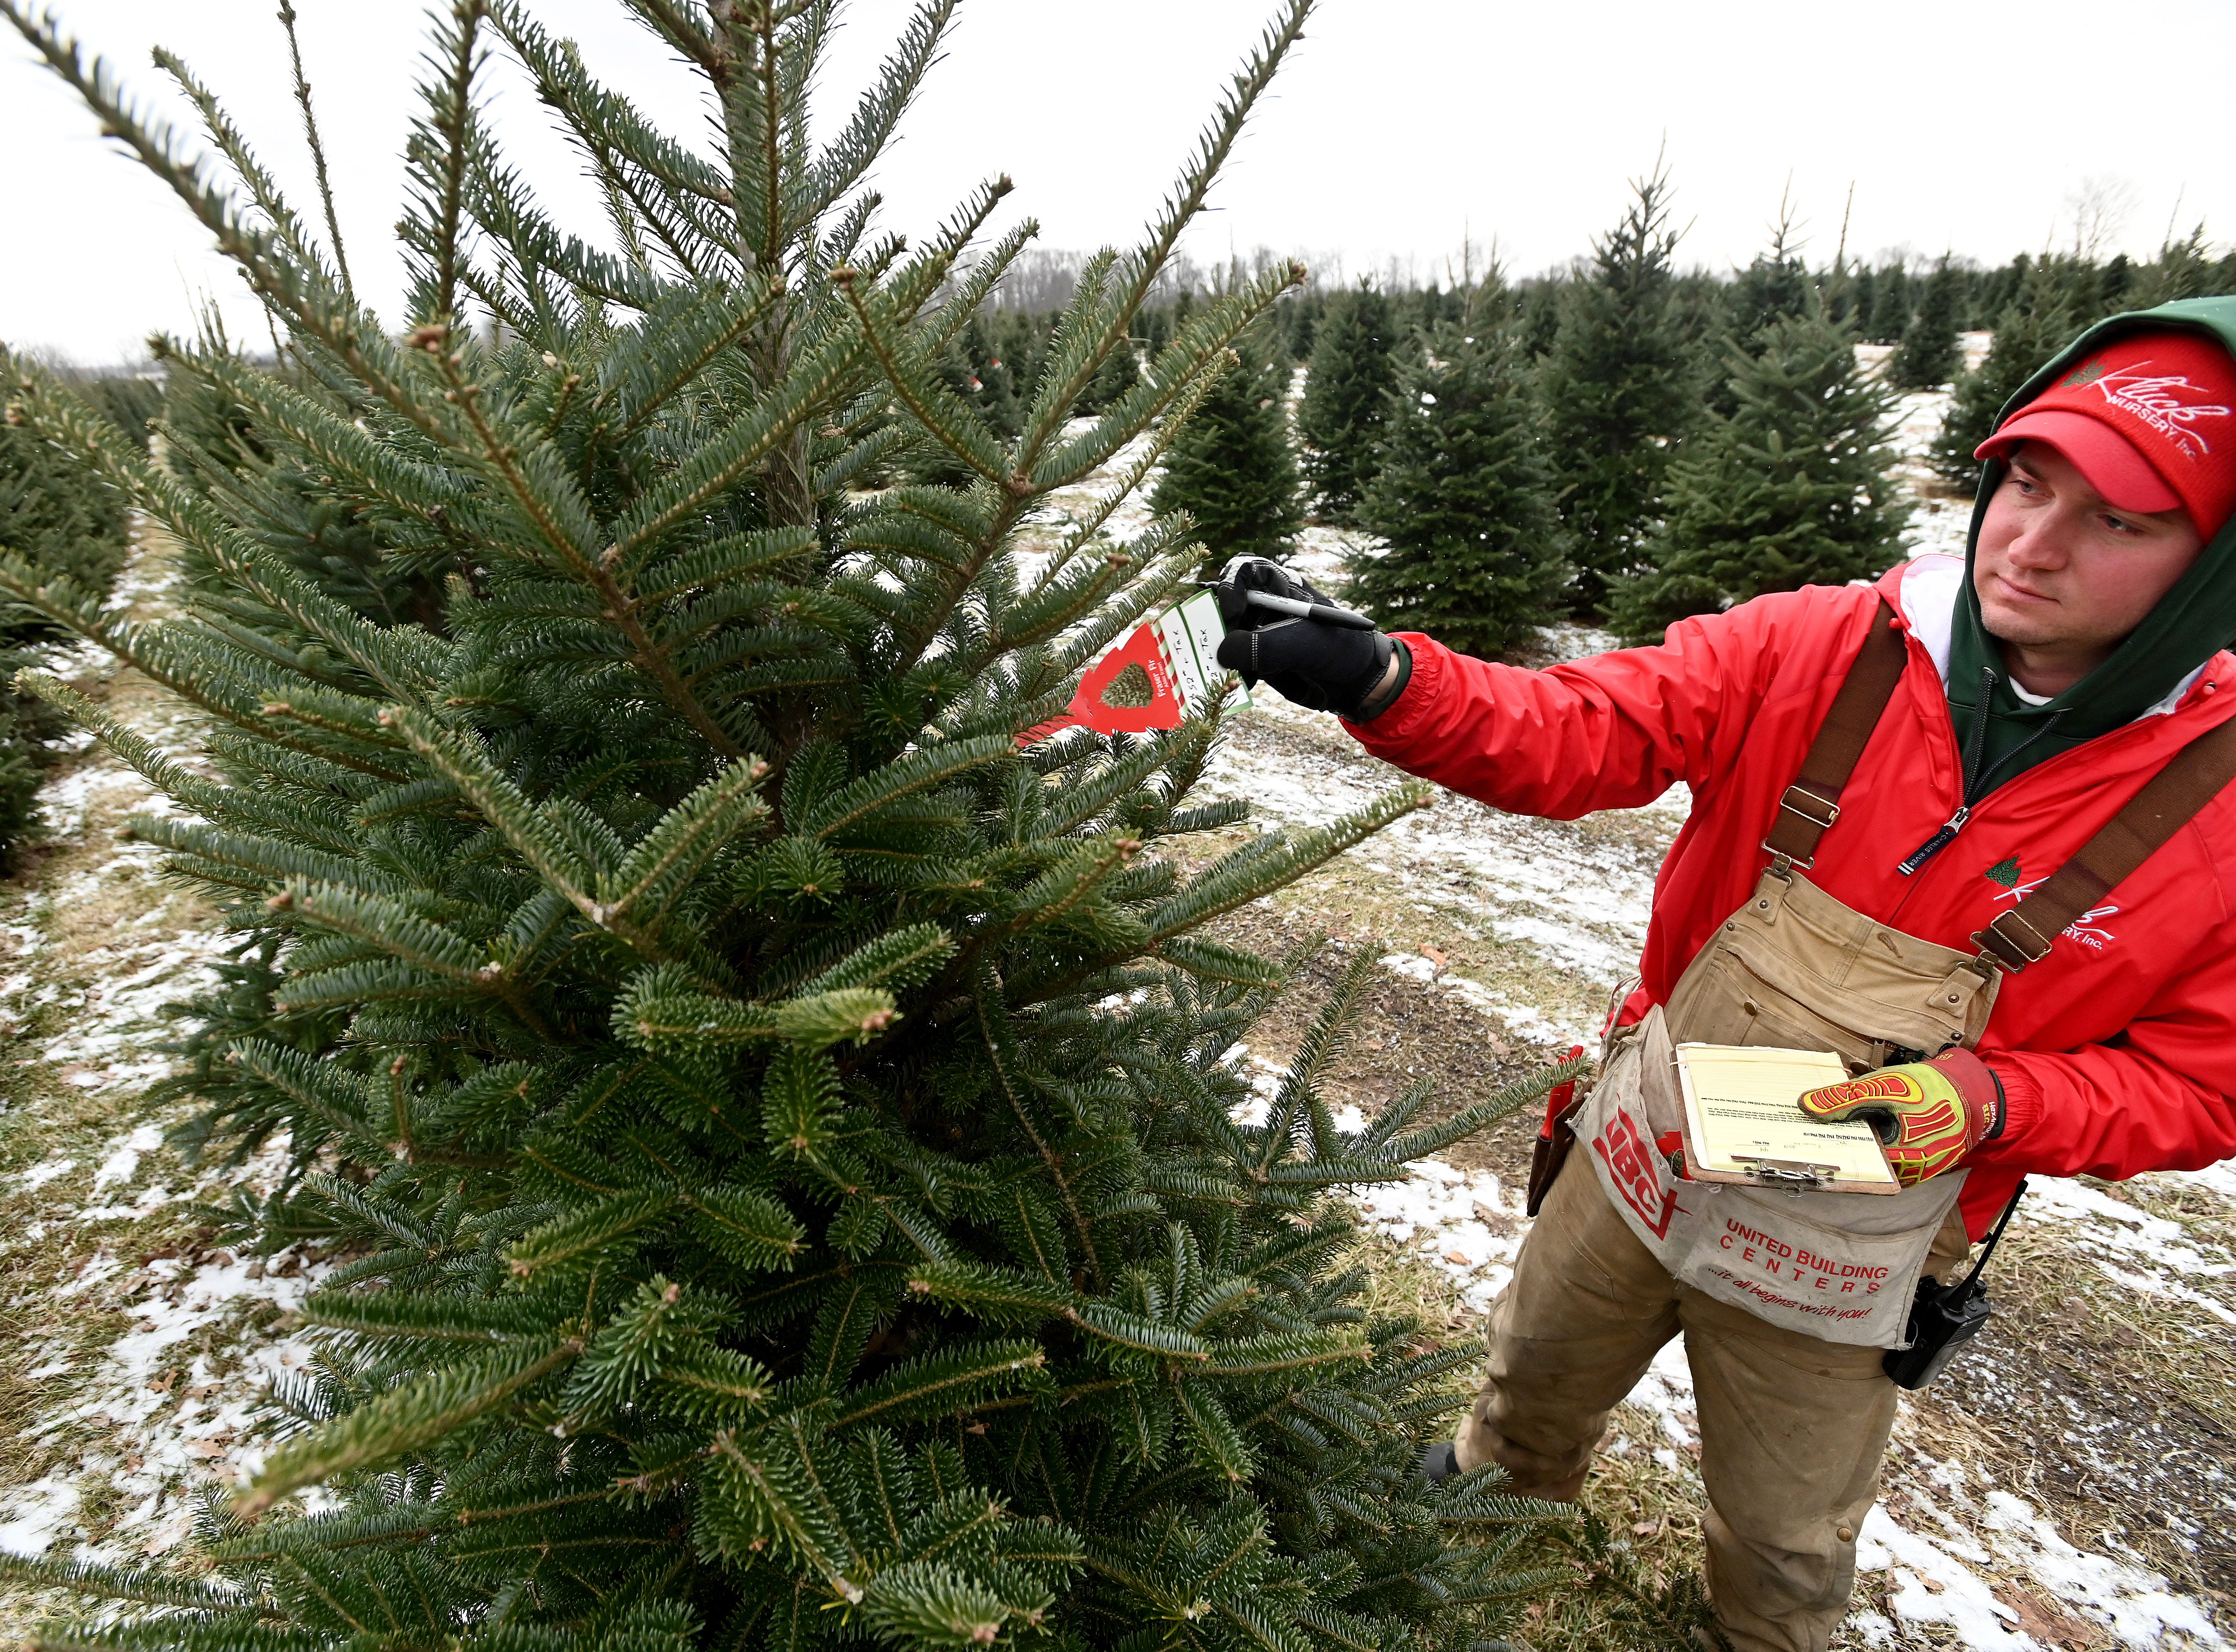 Tyler Kluck marks trees with price tags based on the species and height at the Kluck family Christmas tree farm.  Tyler is the fourth generation of Klucks working at the farm/nursery.